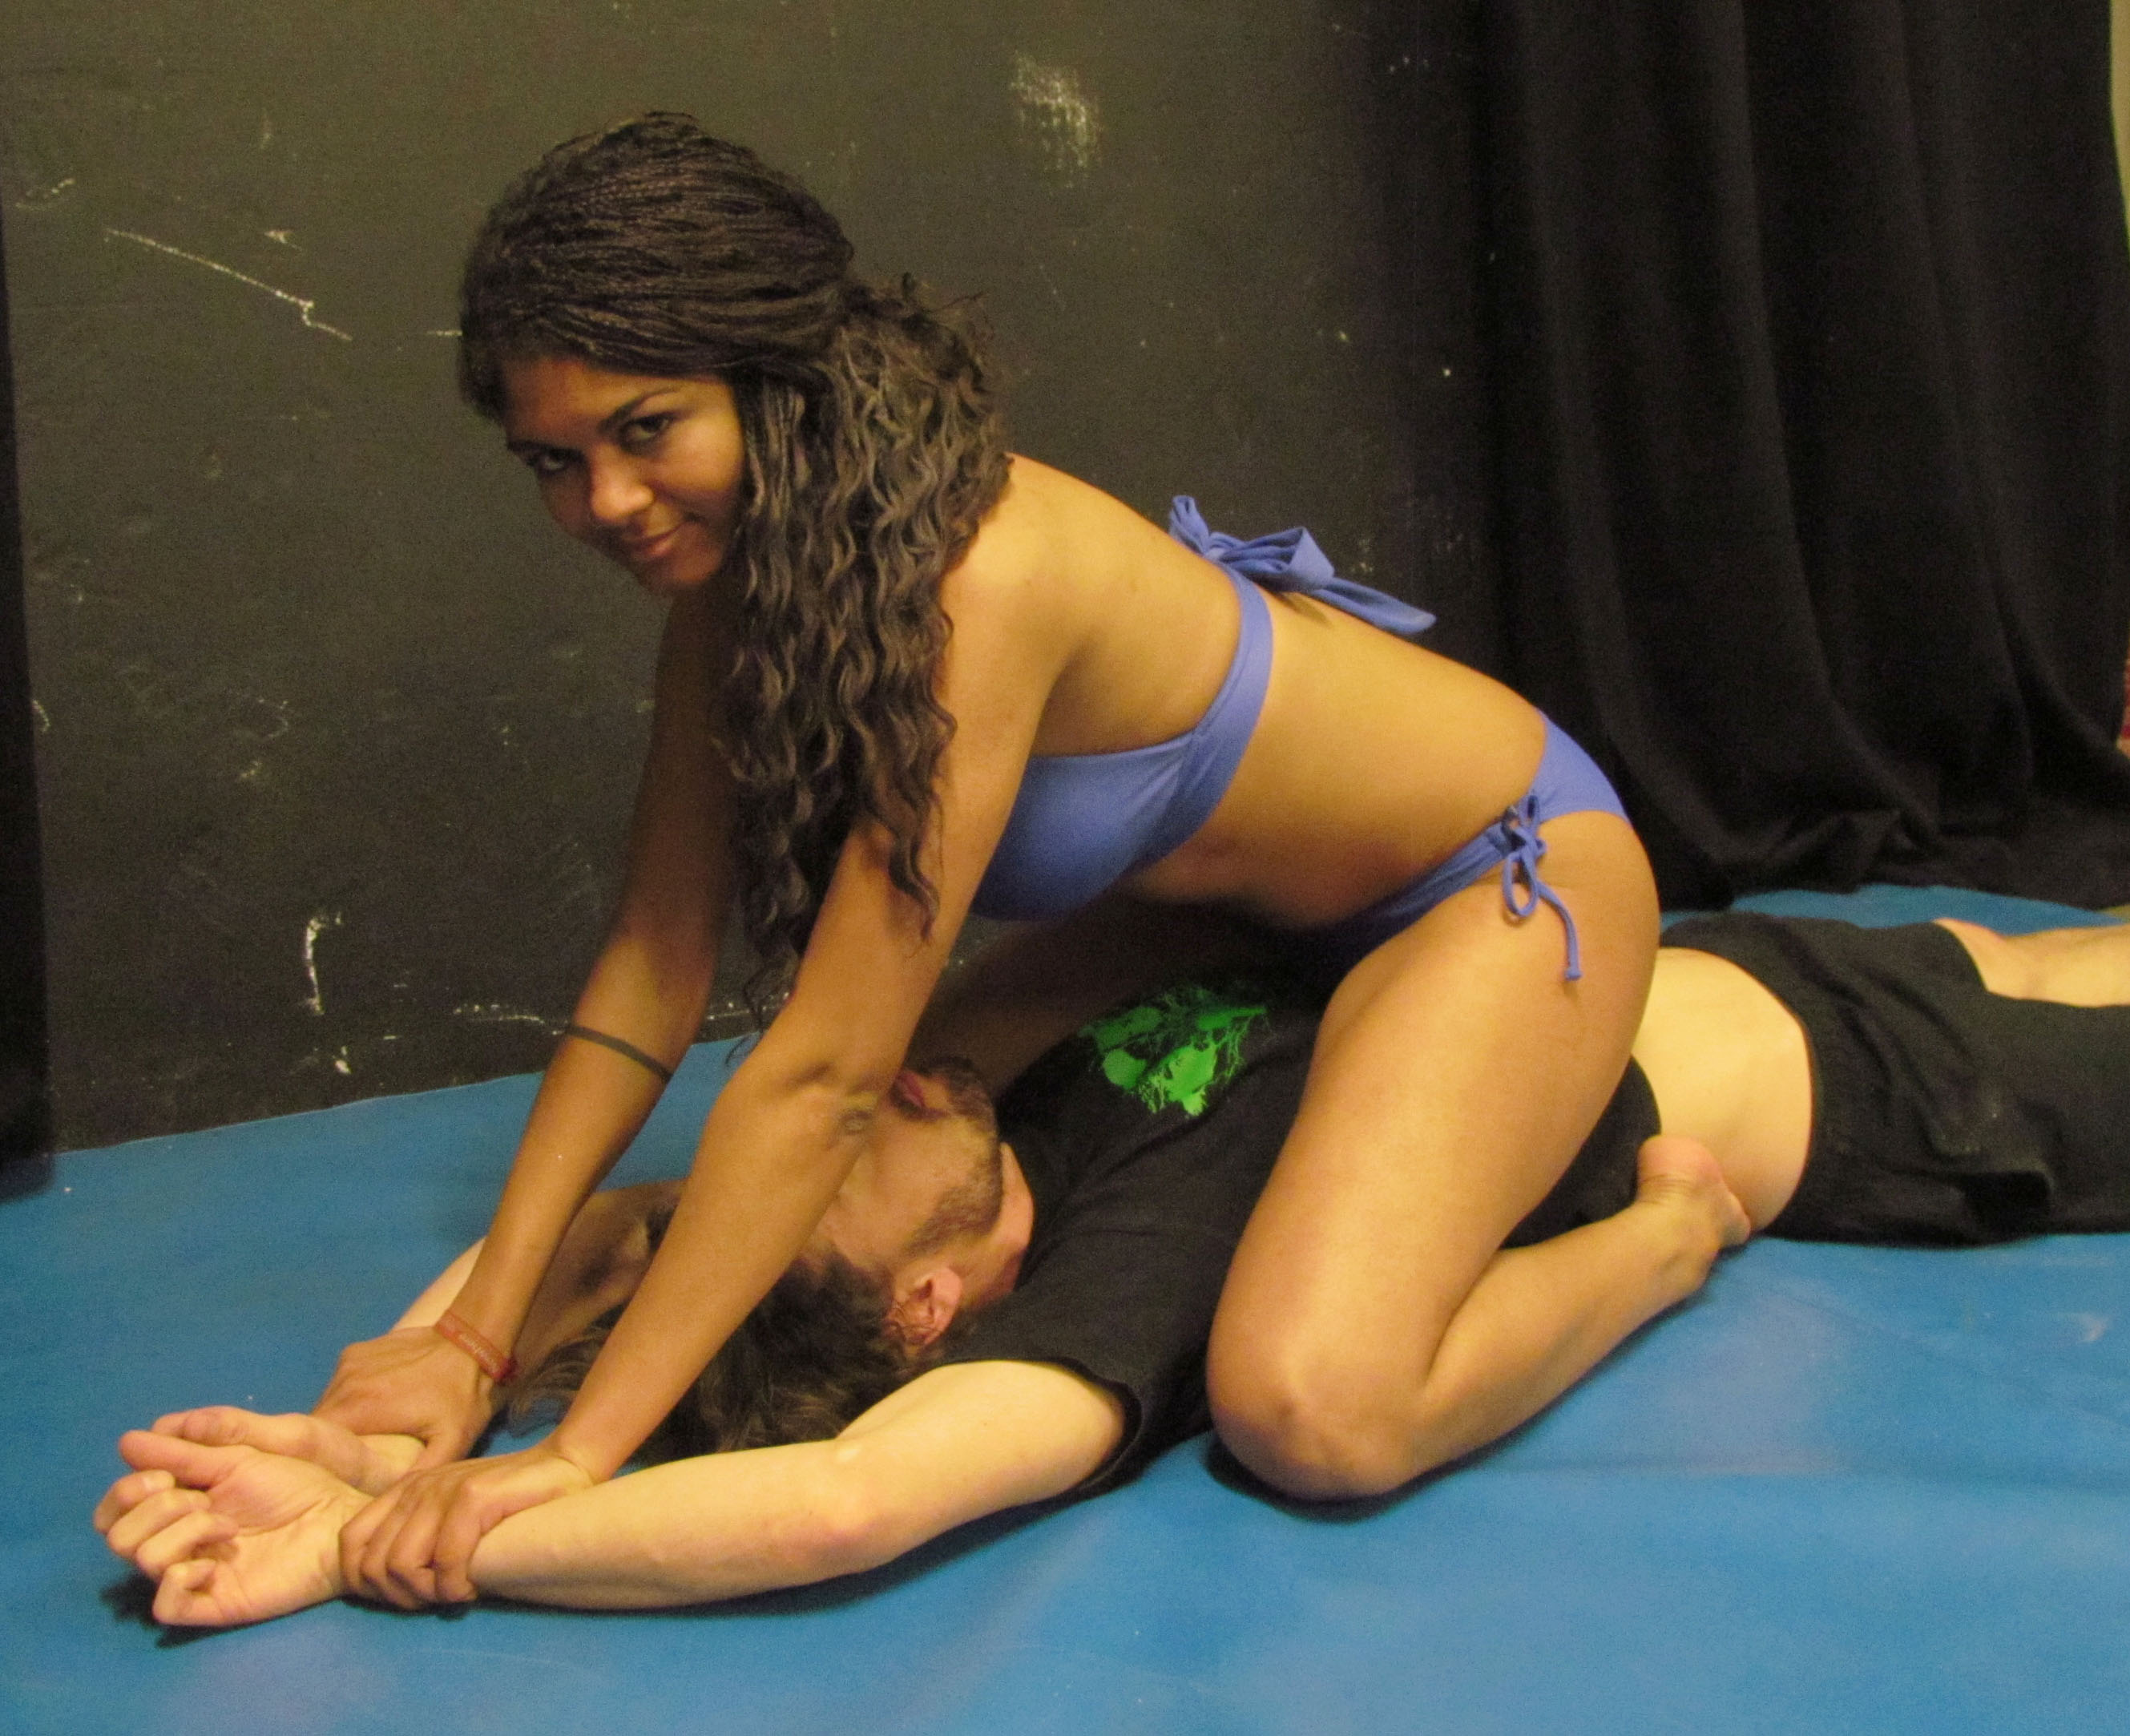 First mixed wrestling session